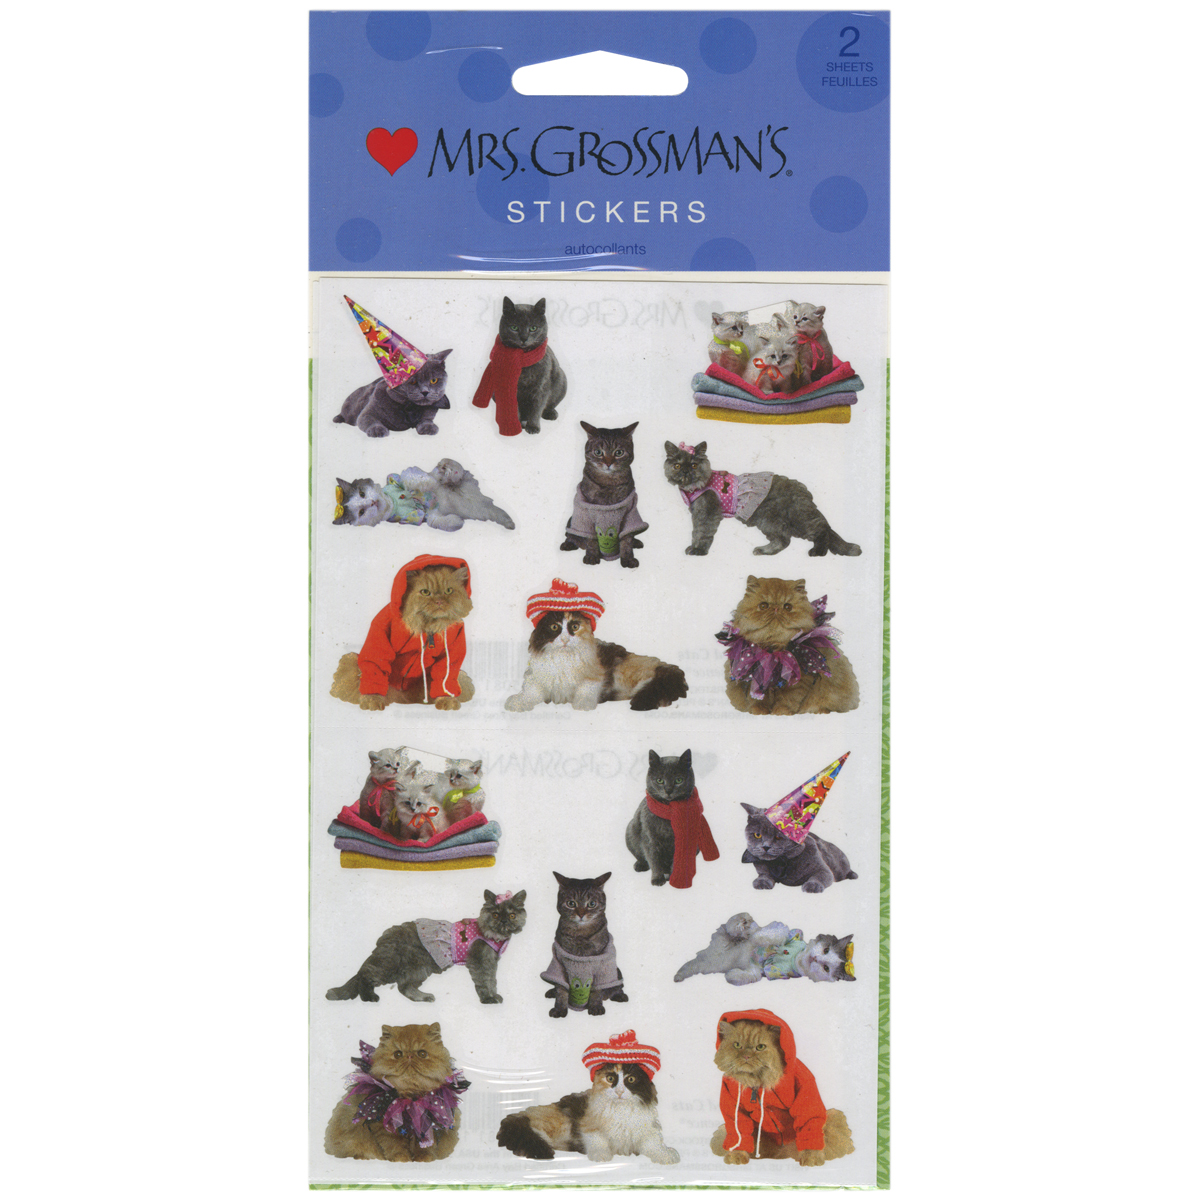 Mrs. Grossman's Stickers-Pampered Cats - image 1 of 1